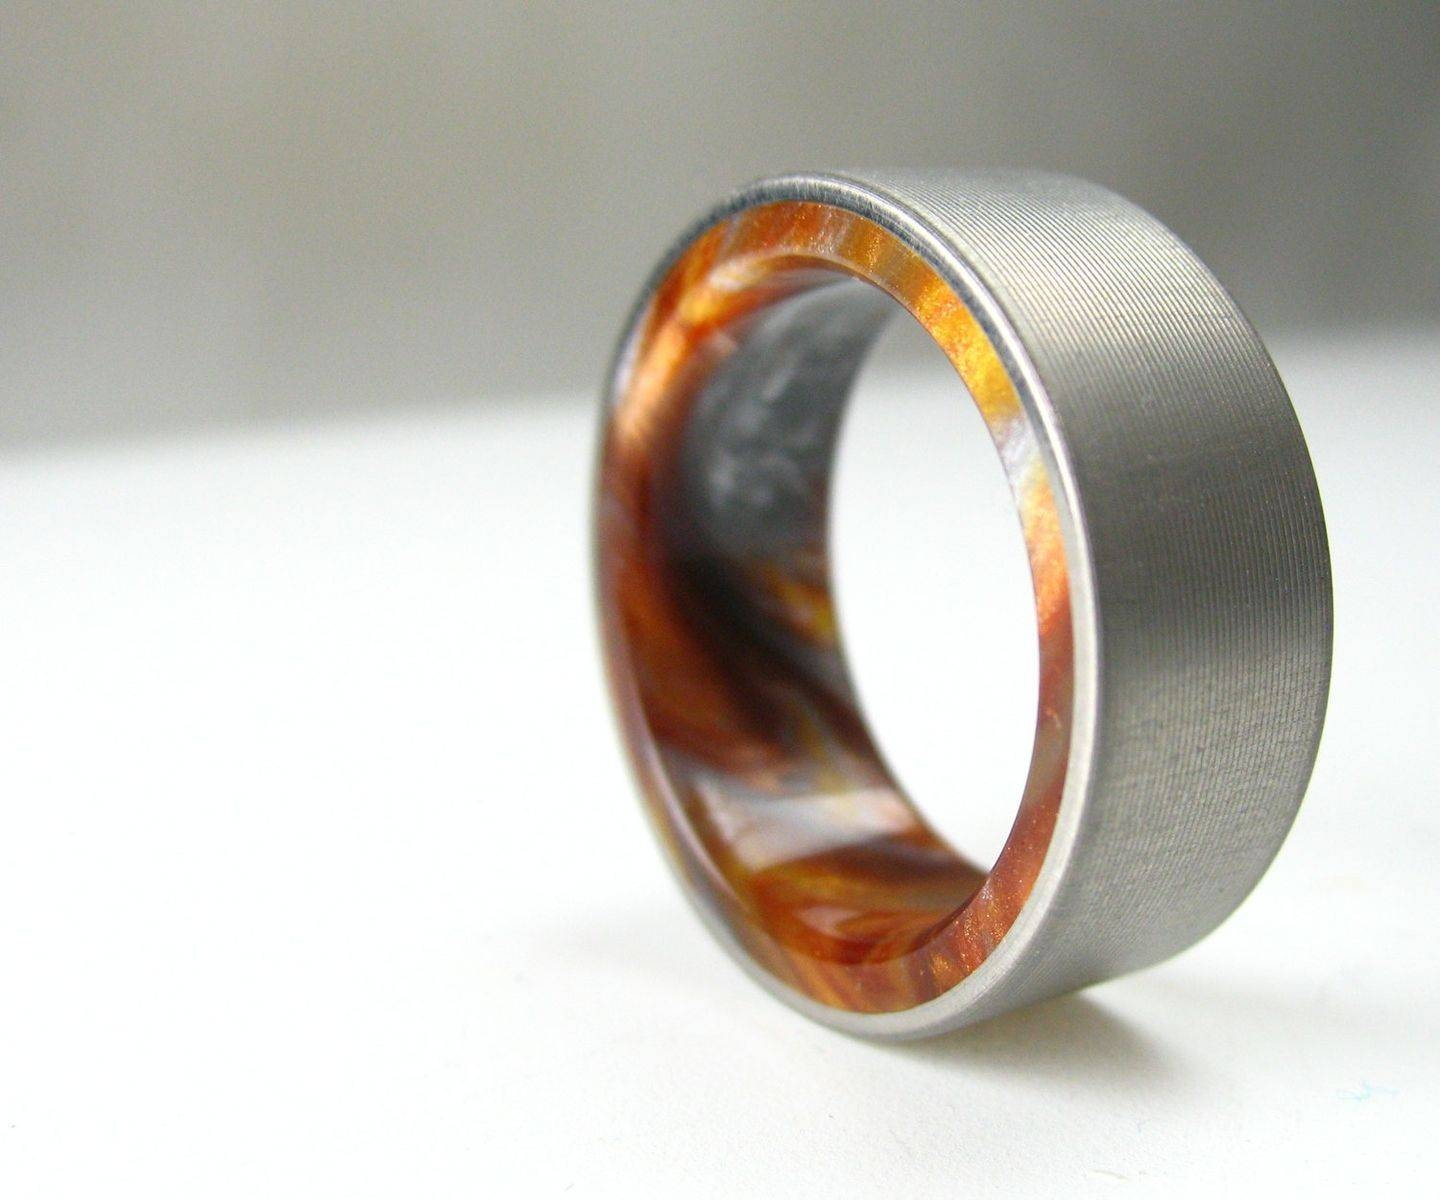 Modern Wedding Bands | Contemporary Wedding Rings | Custommade Within Copper Men's Wedding Bands (View 13 of 15)